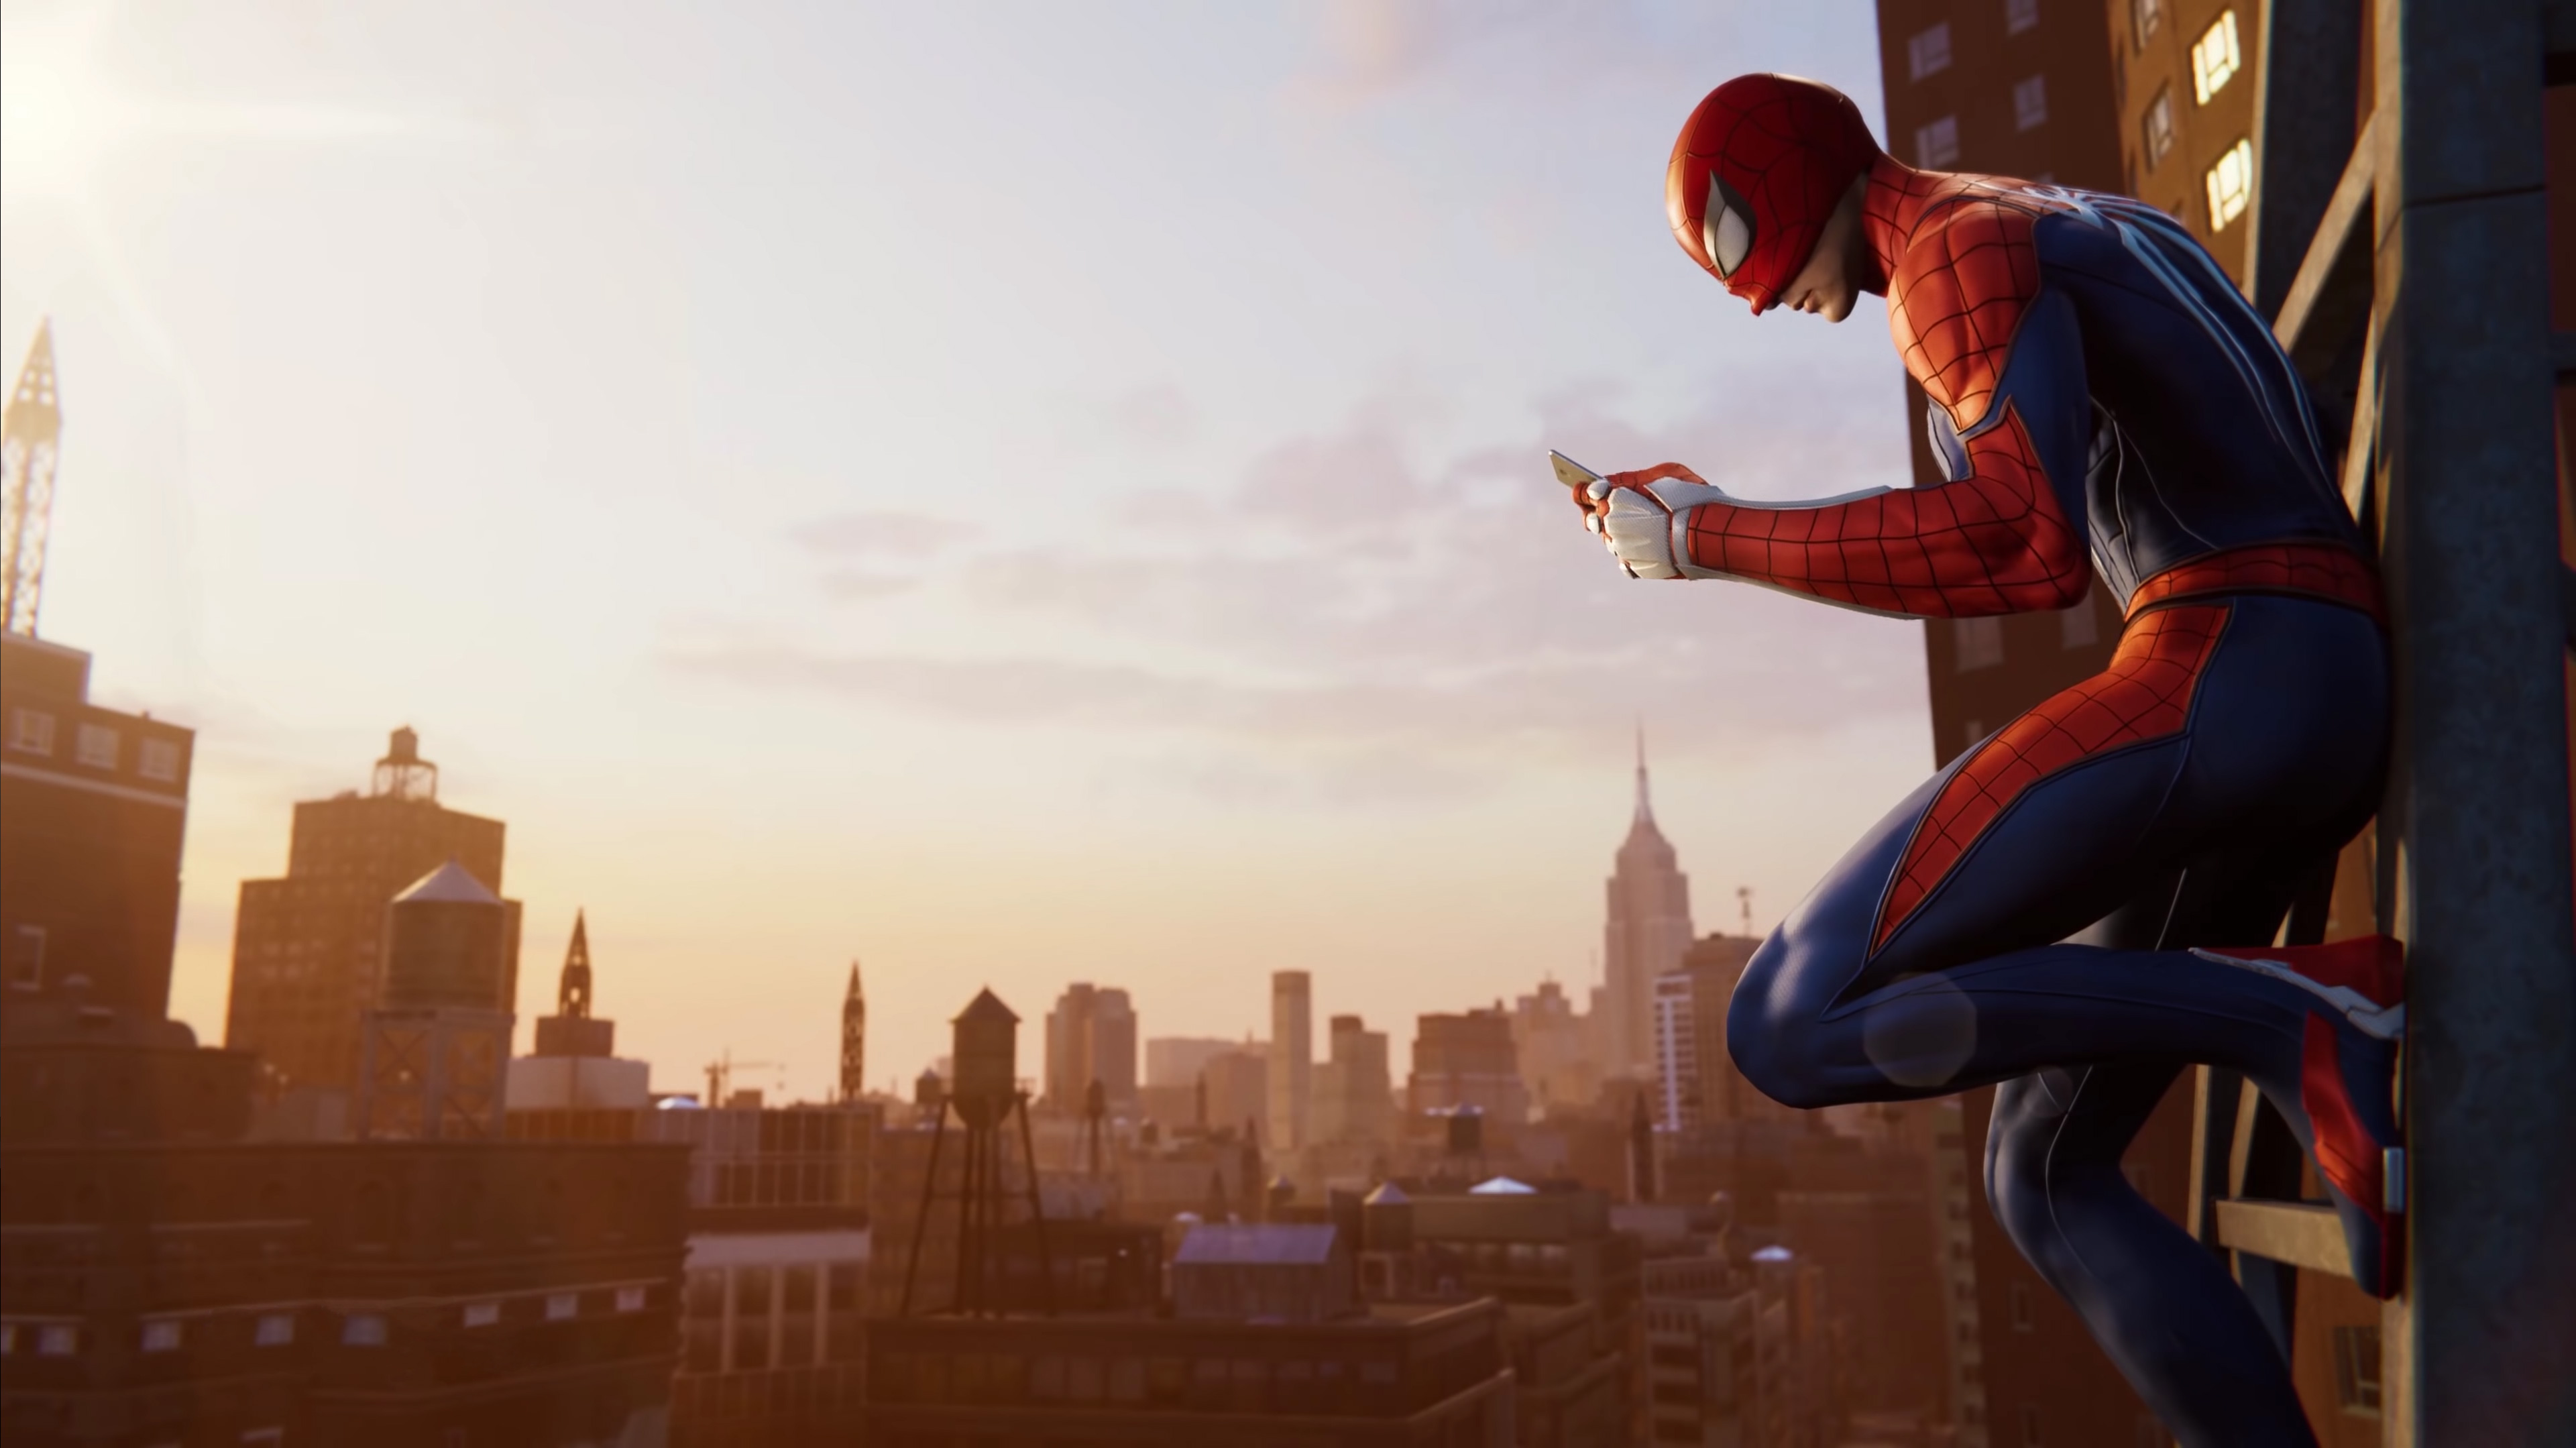 Spiderman Ps4 4k Wallpaper: Spiderman Ps4 Pro 5k, HD Games, 4k Wallpapers, Images